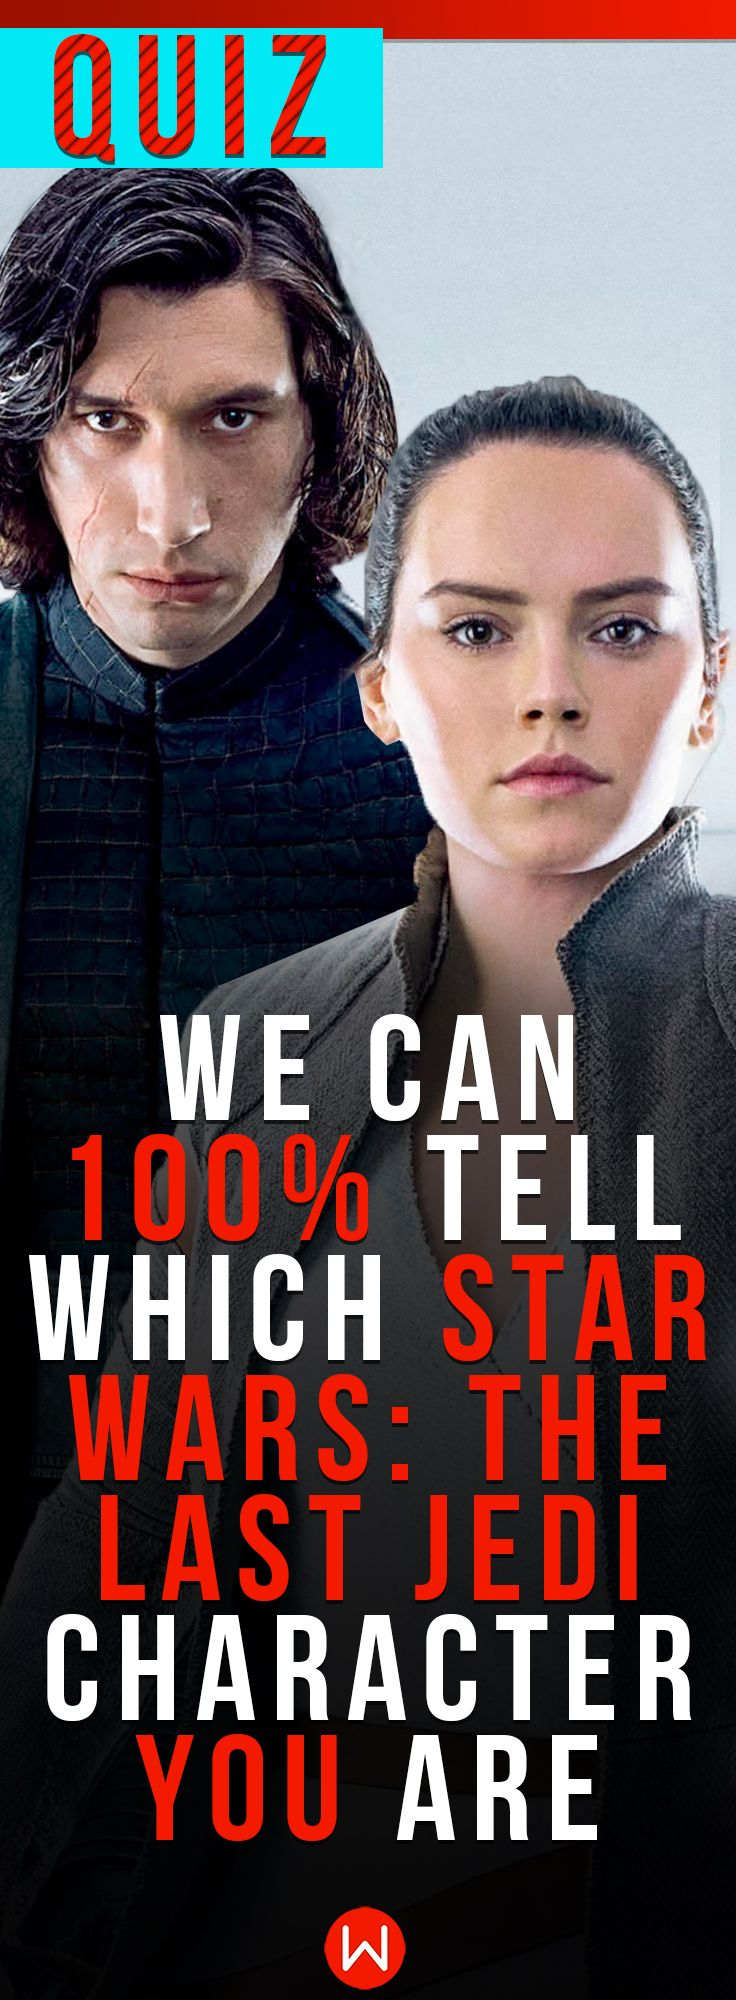 These 16 questions will reveal which Star Wars: The Last Jedi character you are! Star Wars quiz! Star Wars personality test! Star Wars: The Last Jedi, Kylo Ren, Porg, Rey, Leia, trivia, poster, knowledge, challenge! Thousands of characters! Which one are you?